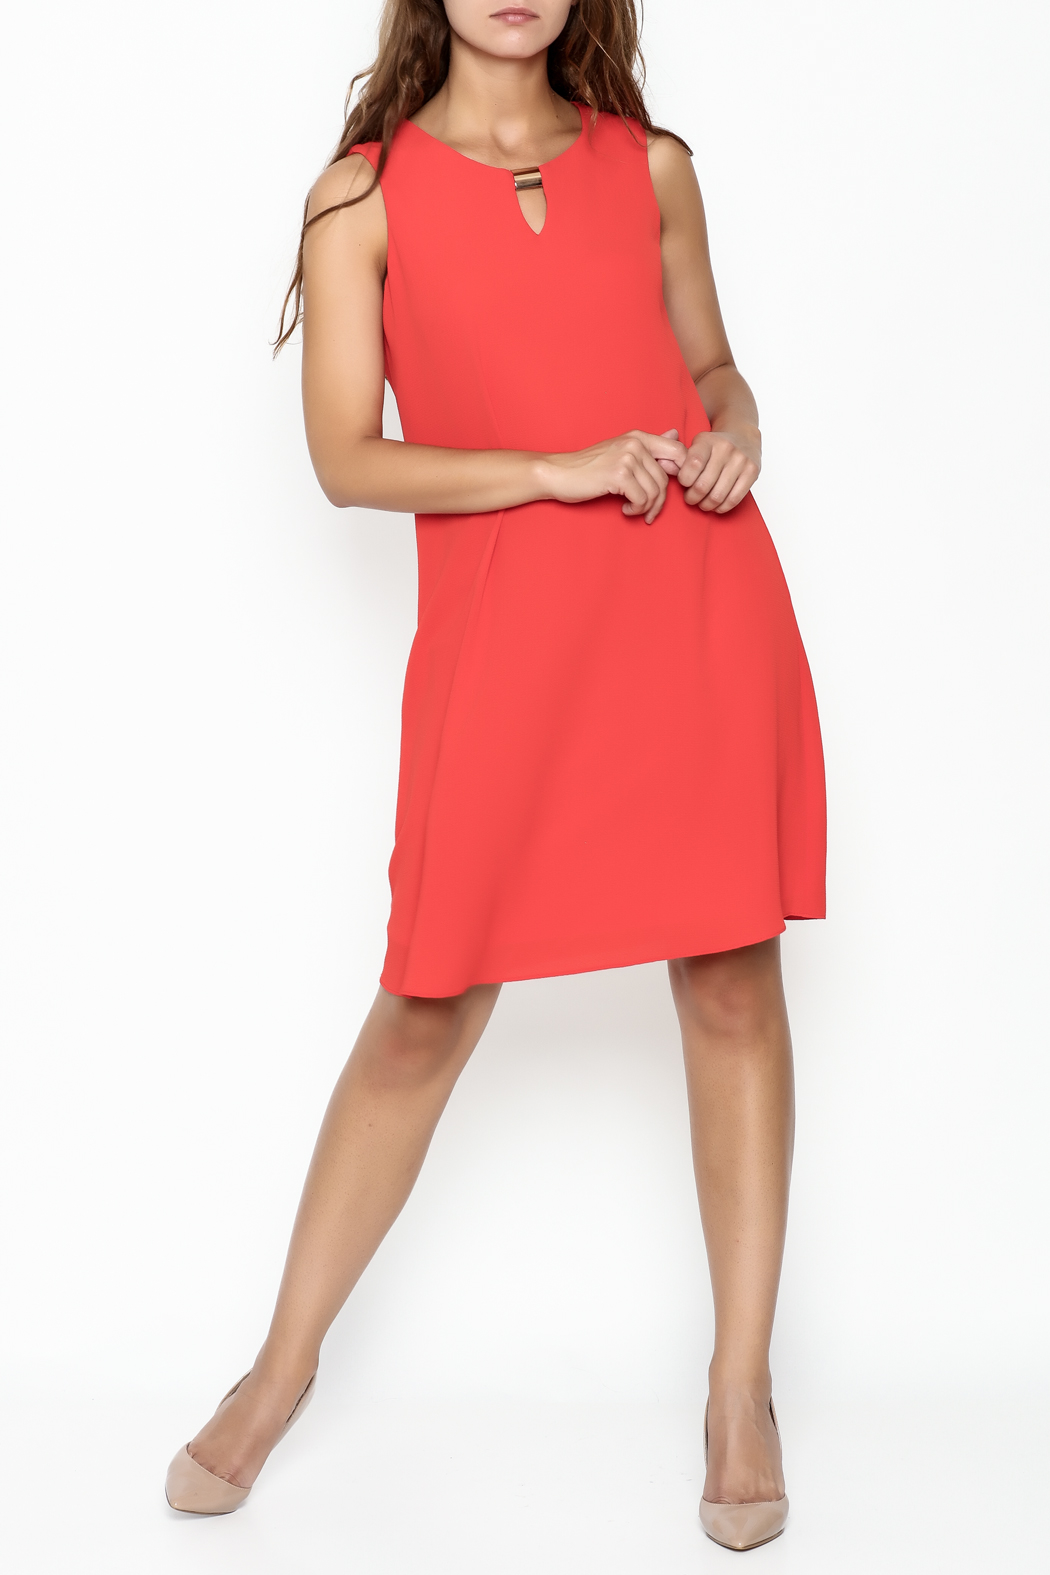 Frank Lyman Coral Shift Dress - Main Image